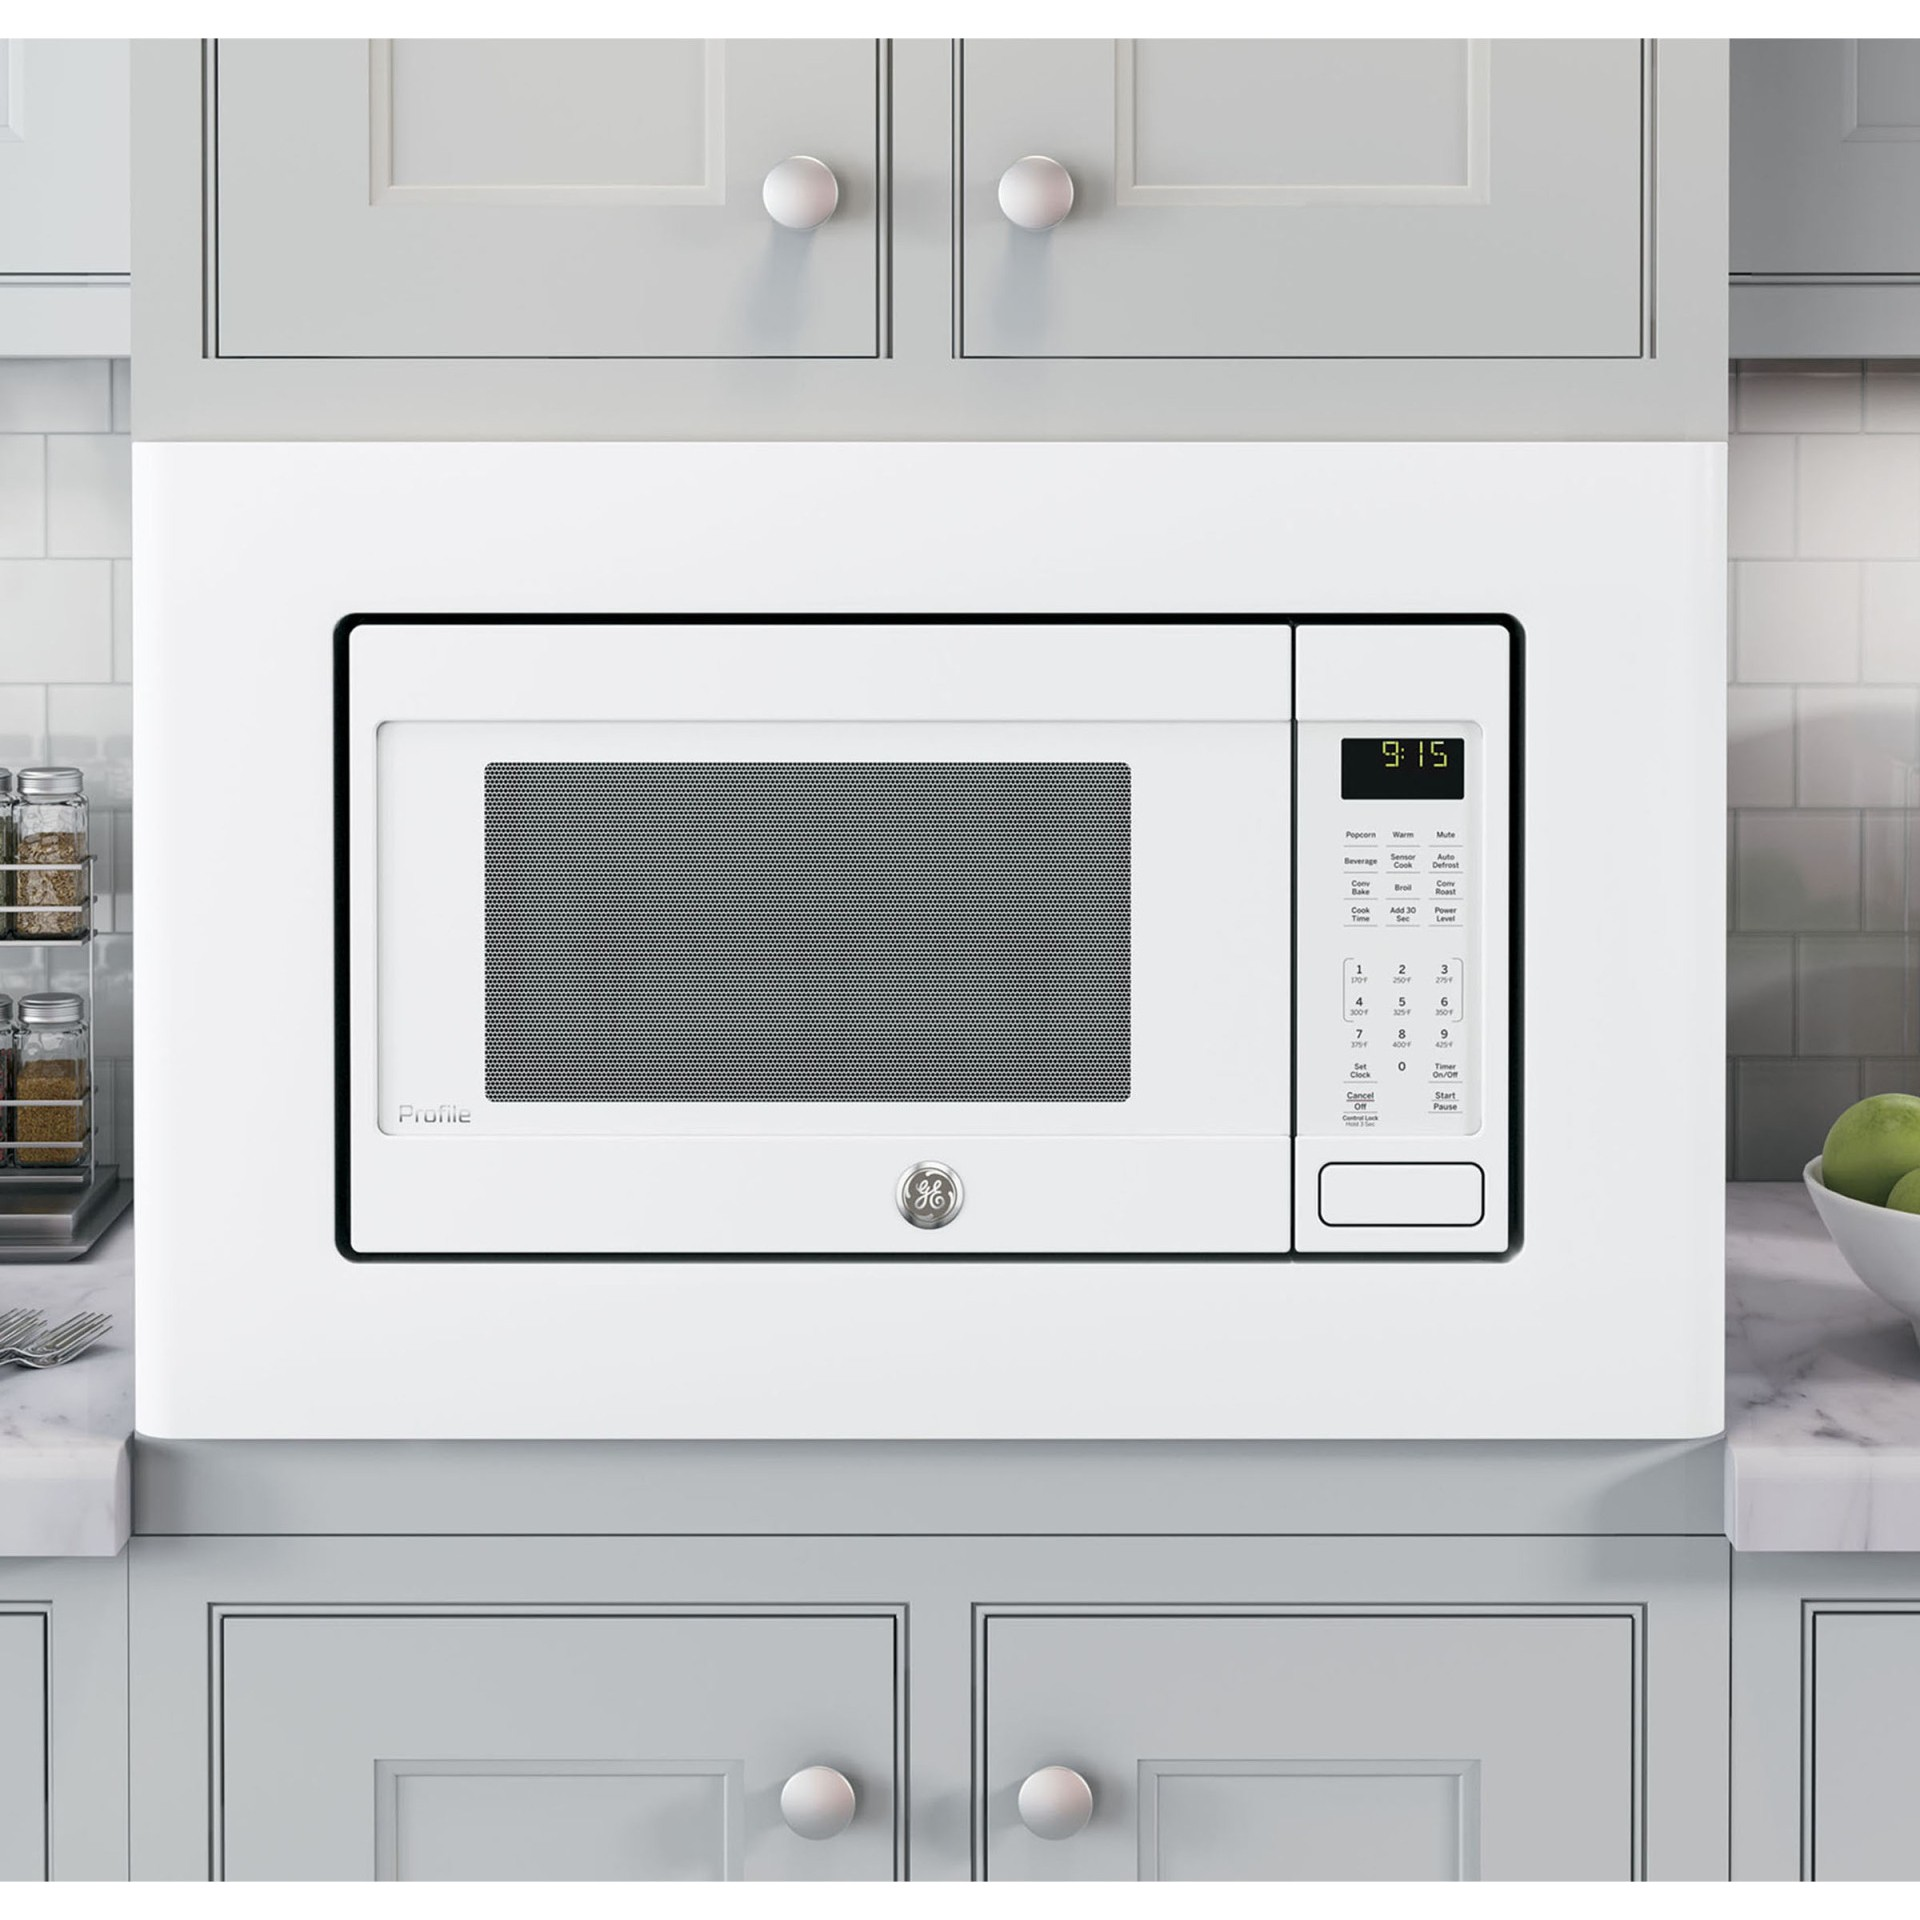 Peb9159djww Ge Profile 1 5 Cu Ft Countertop Or Built